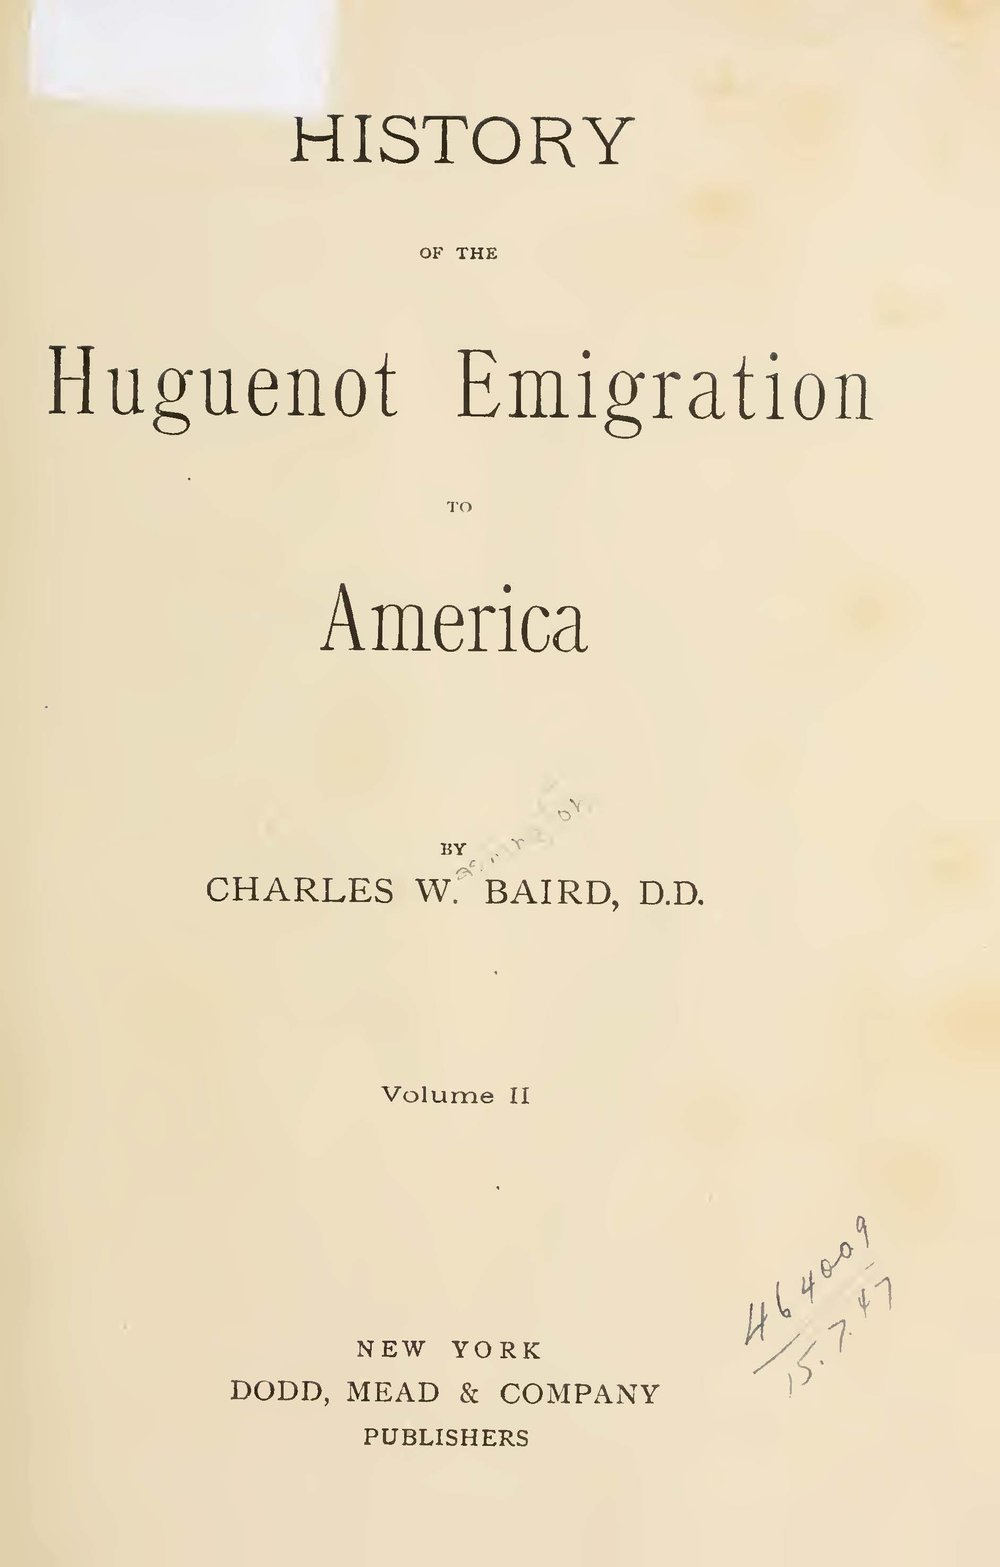 Baird, Charles Washington, History of the Huguenot Emigration to America, Vol. 2 Title Page.jpg